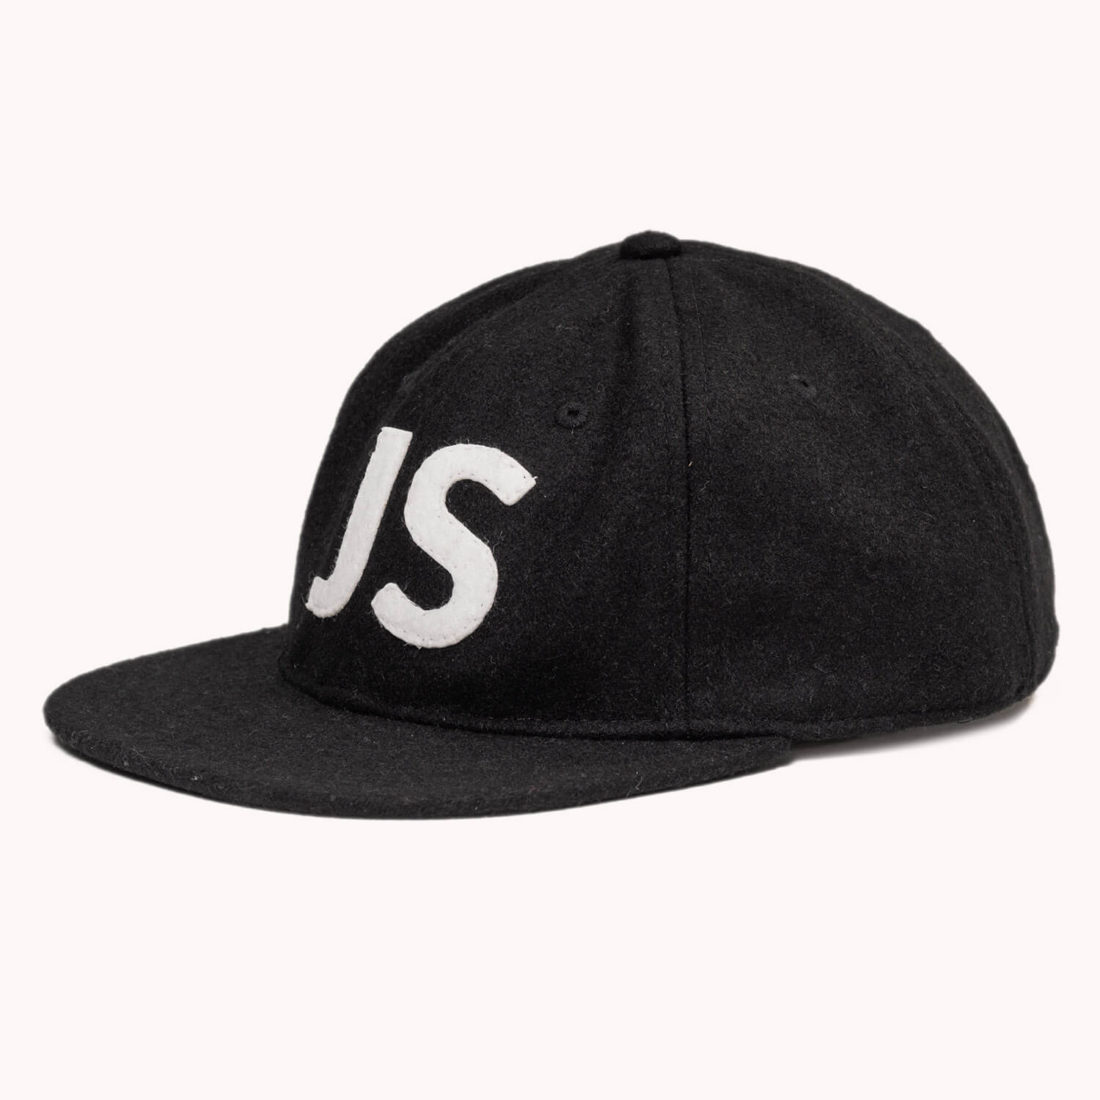 Team Hat - Black 1